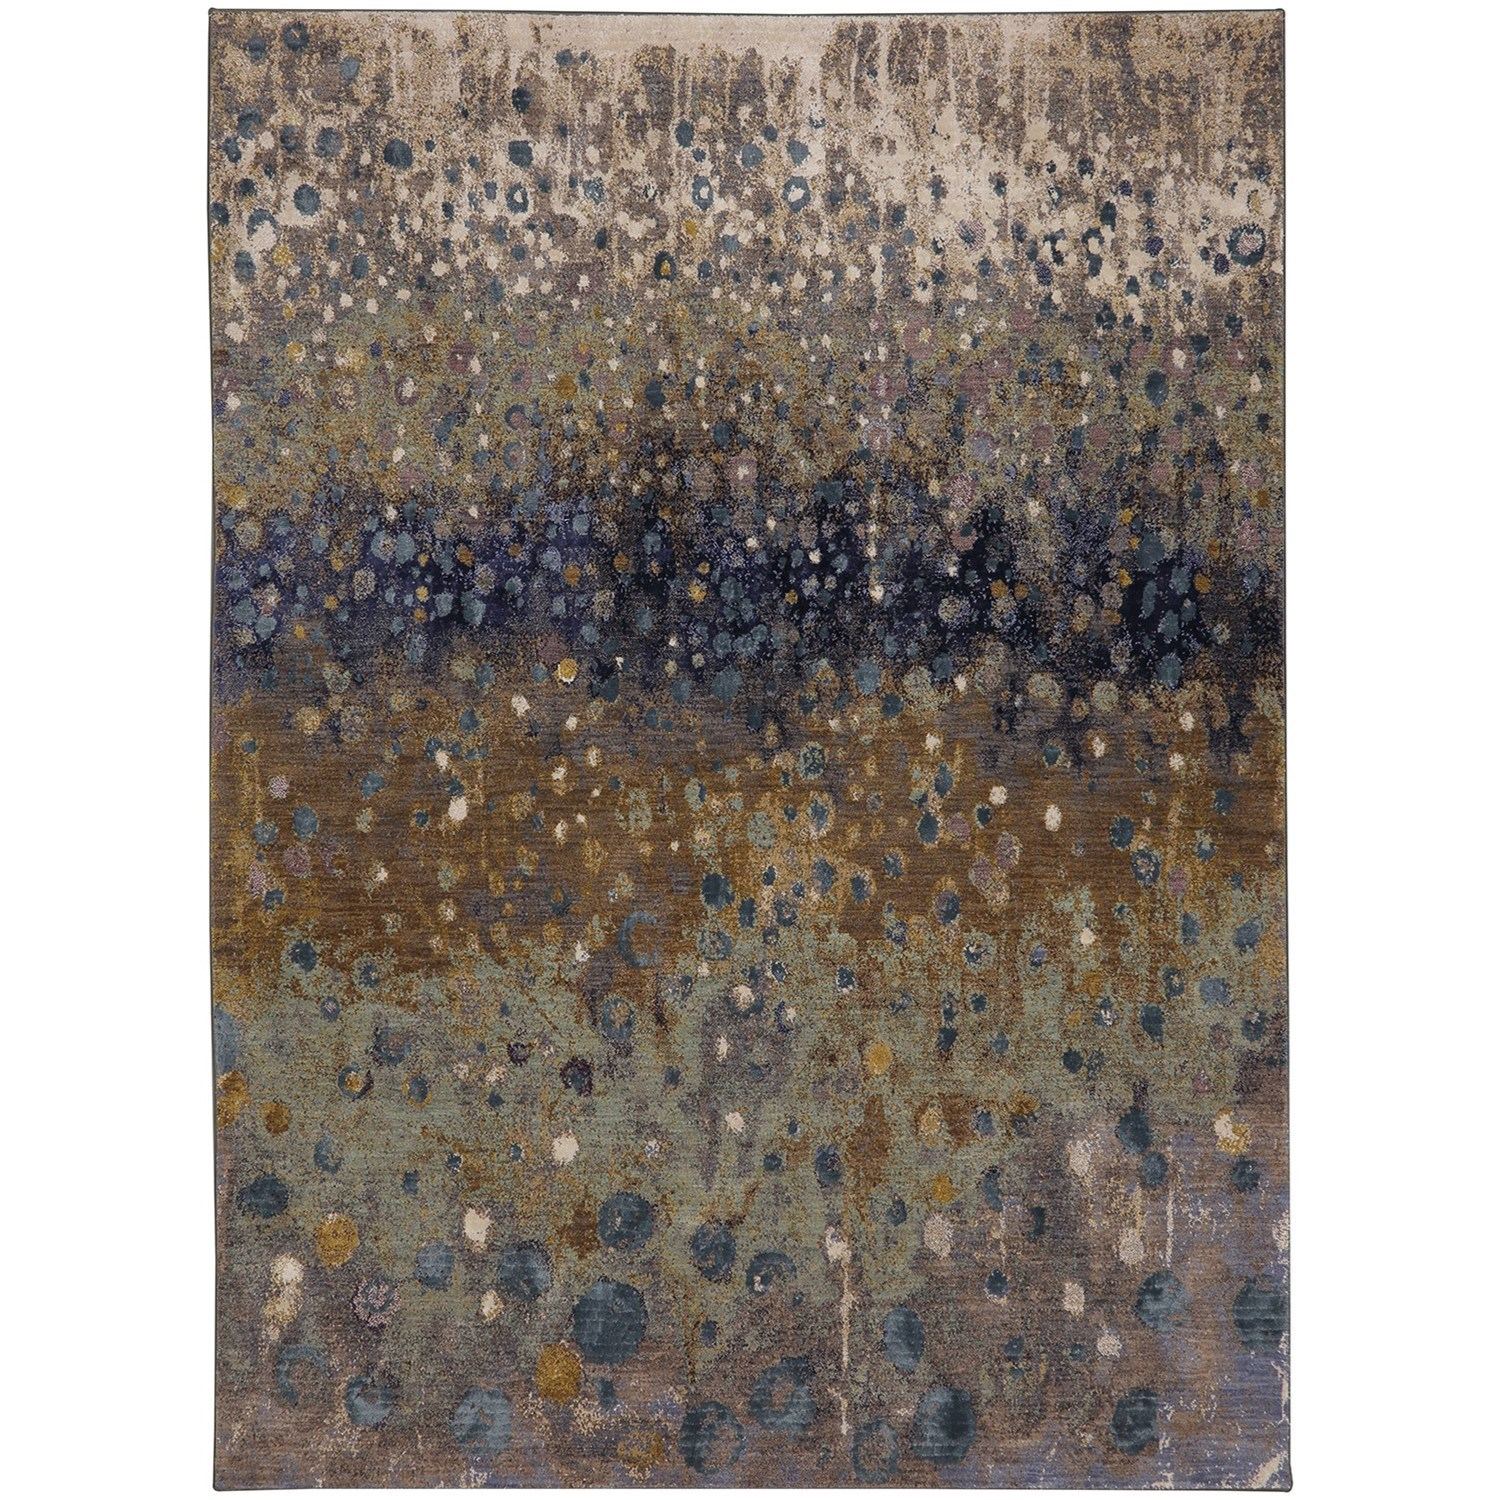 """Enigma 5' 3""""x7' 10"""" Rectangle Abstract Area Rug by Karastan Rugs at Darvin Furniture"""